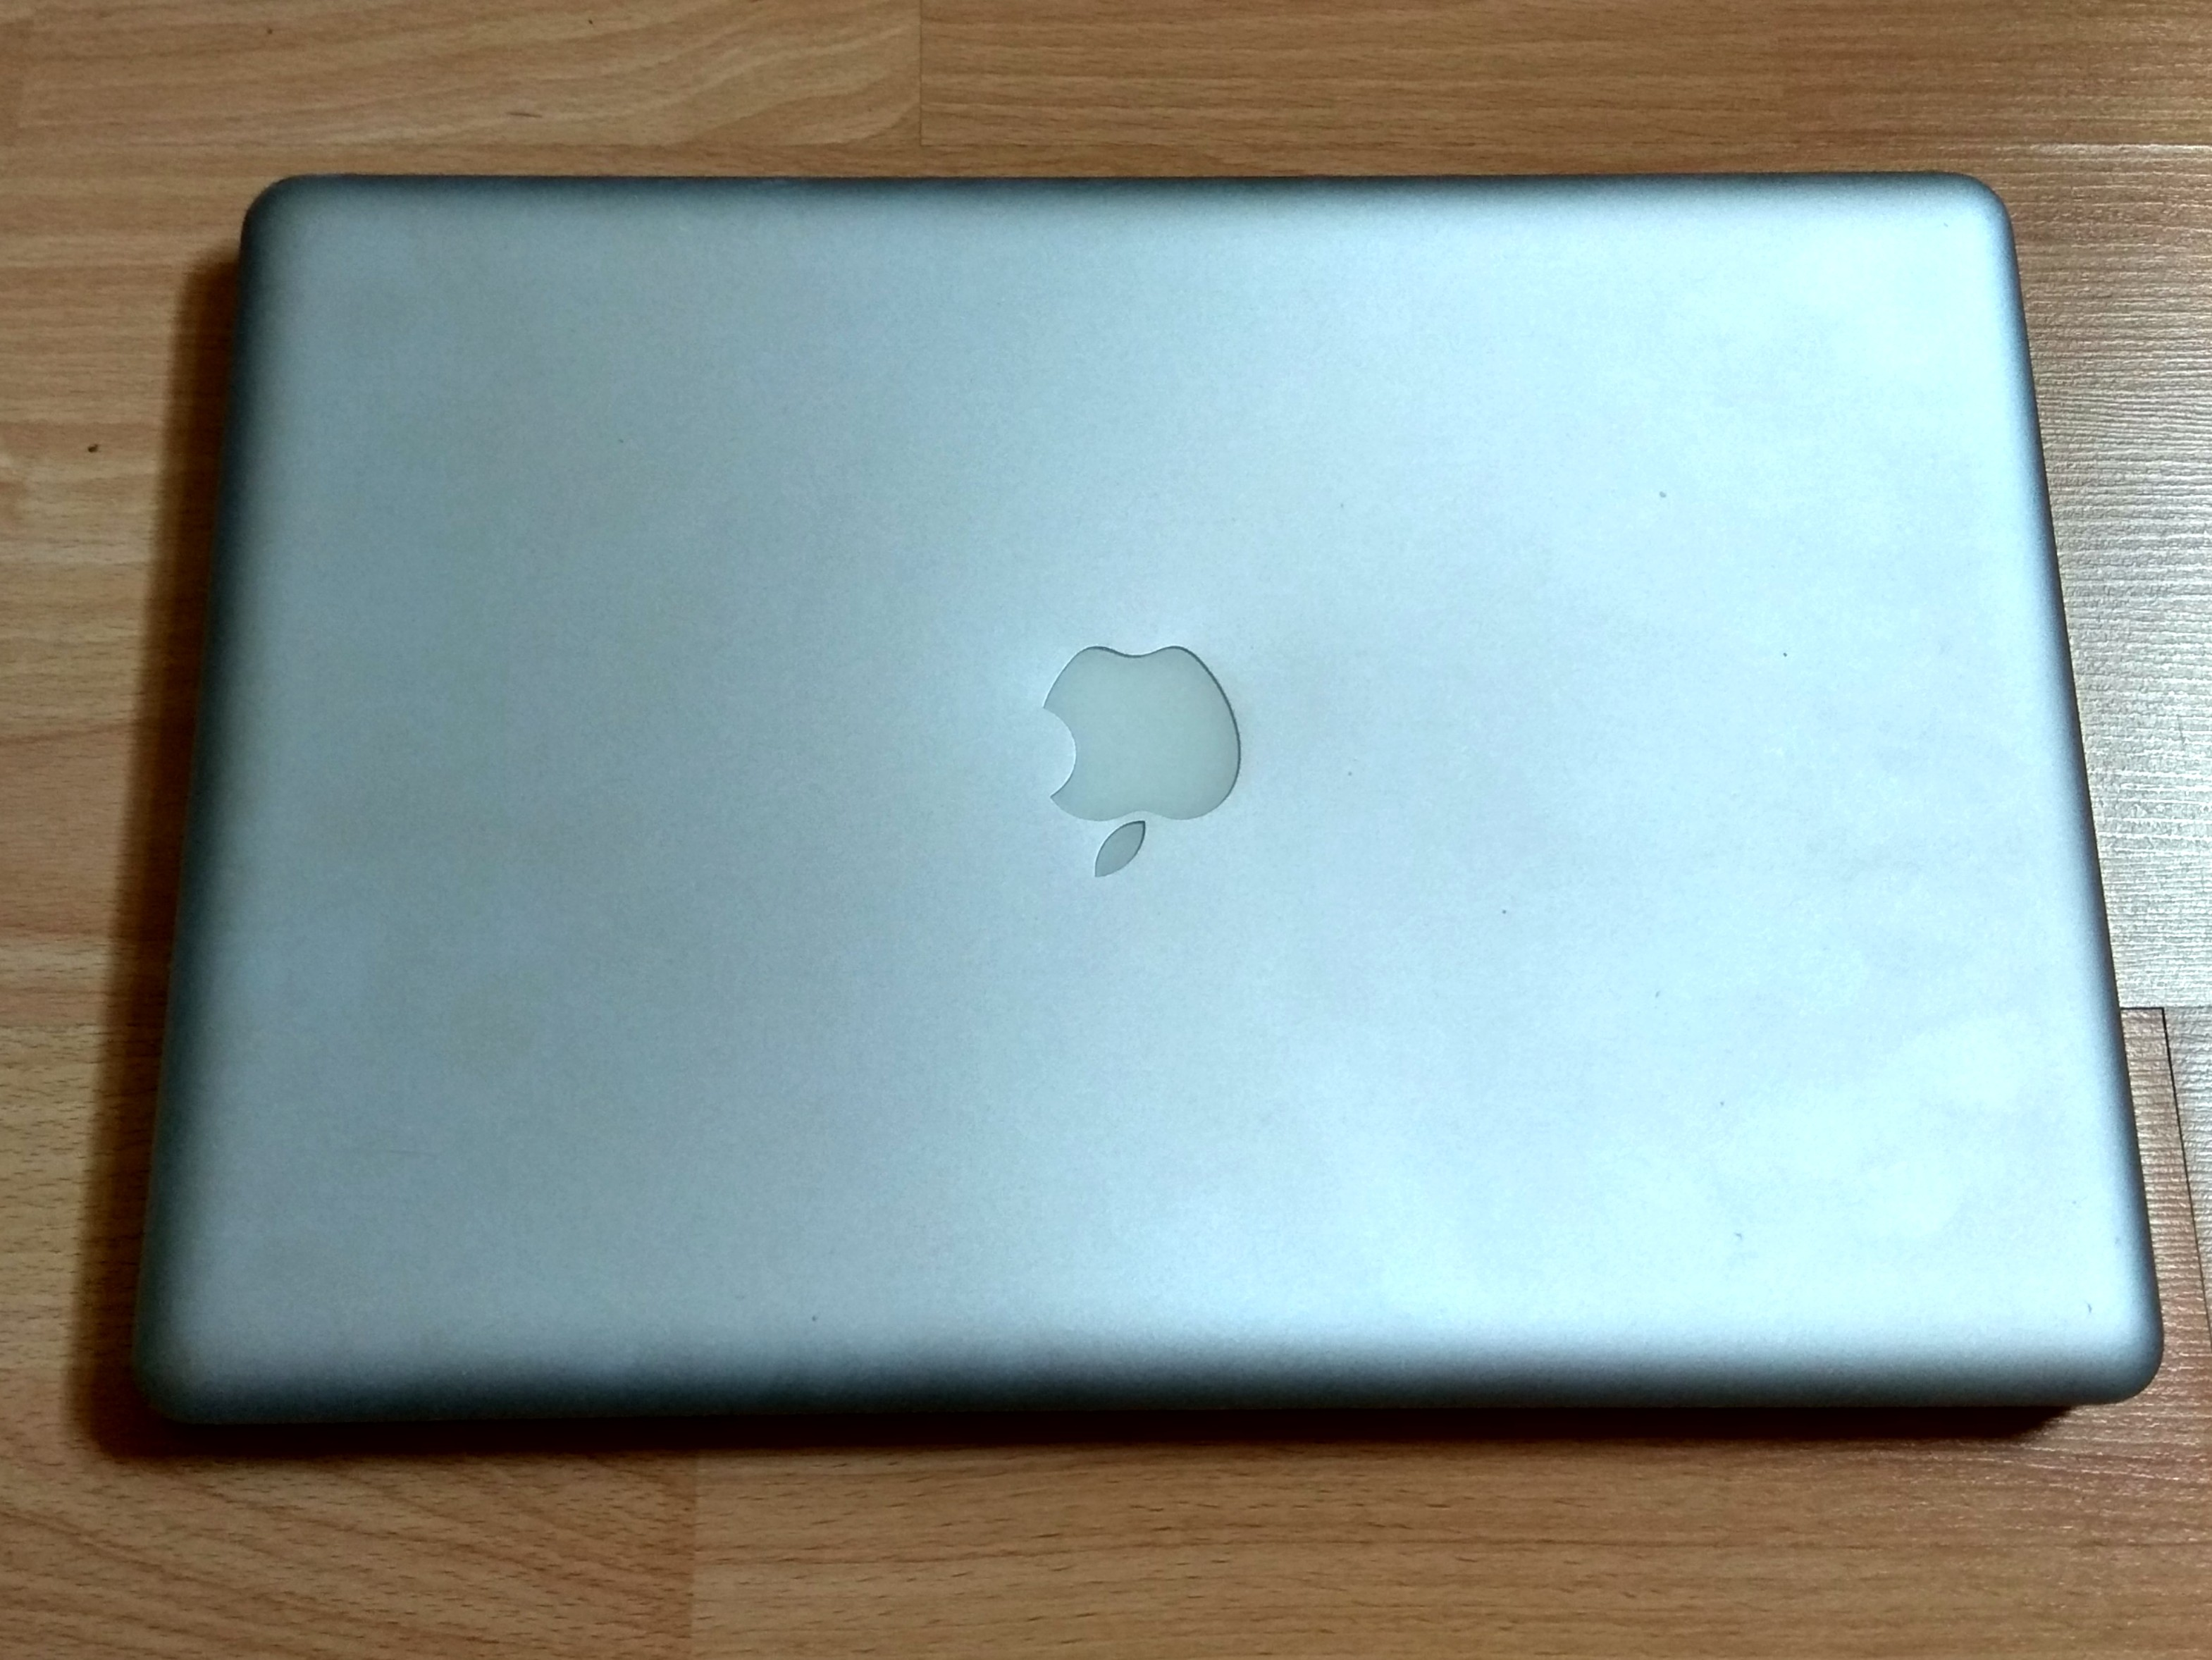 Macbook Pro Late 2011 A1286 (Motherboard spoilt)